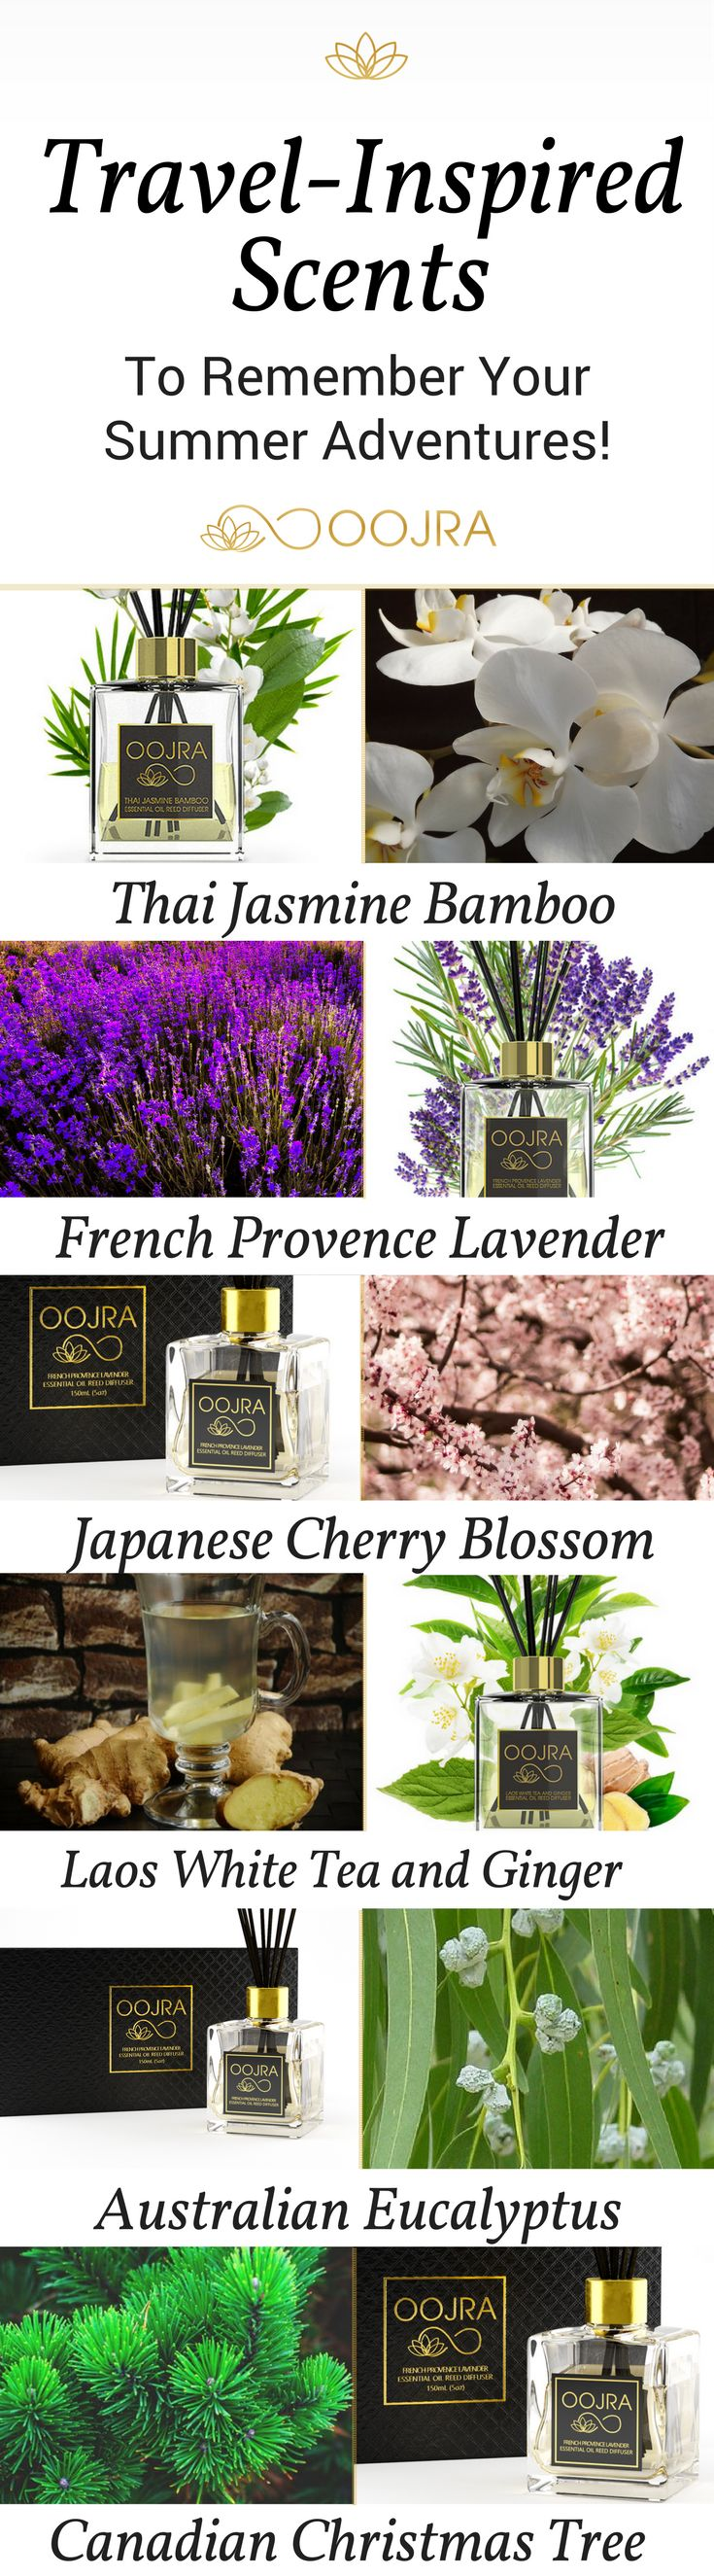 Travel-Inspired Essential Oil Reed Diffusers | Aromatherapy | Jasmine, Lavender, Cherry Blossom, Eucalyptus, Christmas Tree | Thailand, France, Japan, Australia, Canada | Oojra Exotic Home Fragrances: http://oojra.com/?utm_source=pinterest.com&utm_medium=social&utm_campaign=TravelScentsSummer&utm_content=TravelScentsSummerWhite